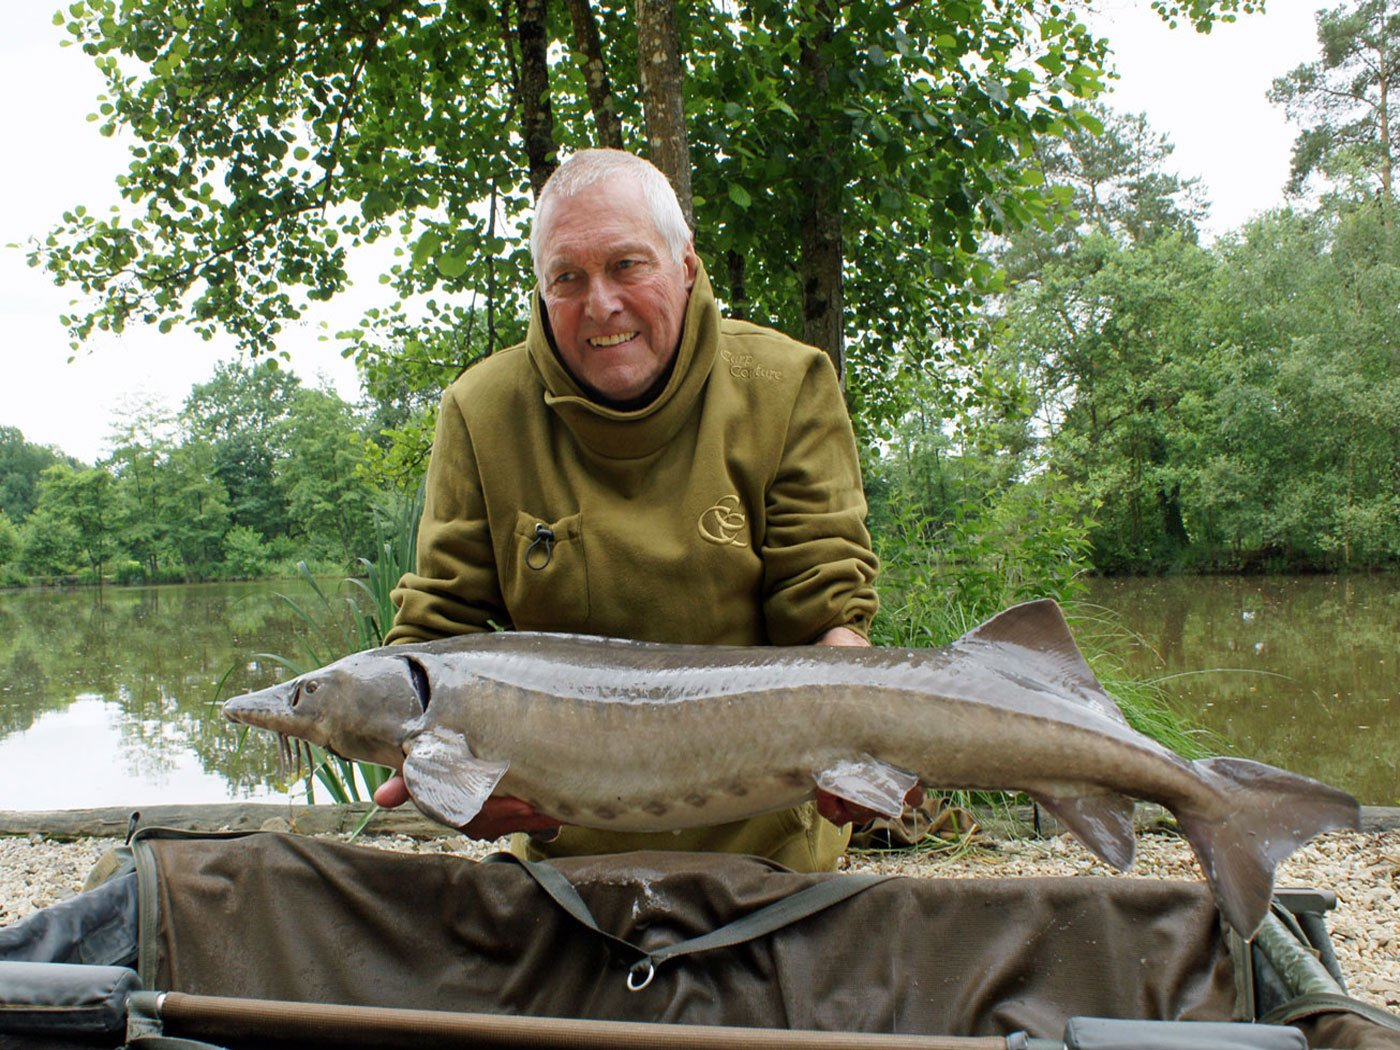 Barry with the sturgeon